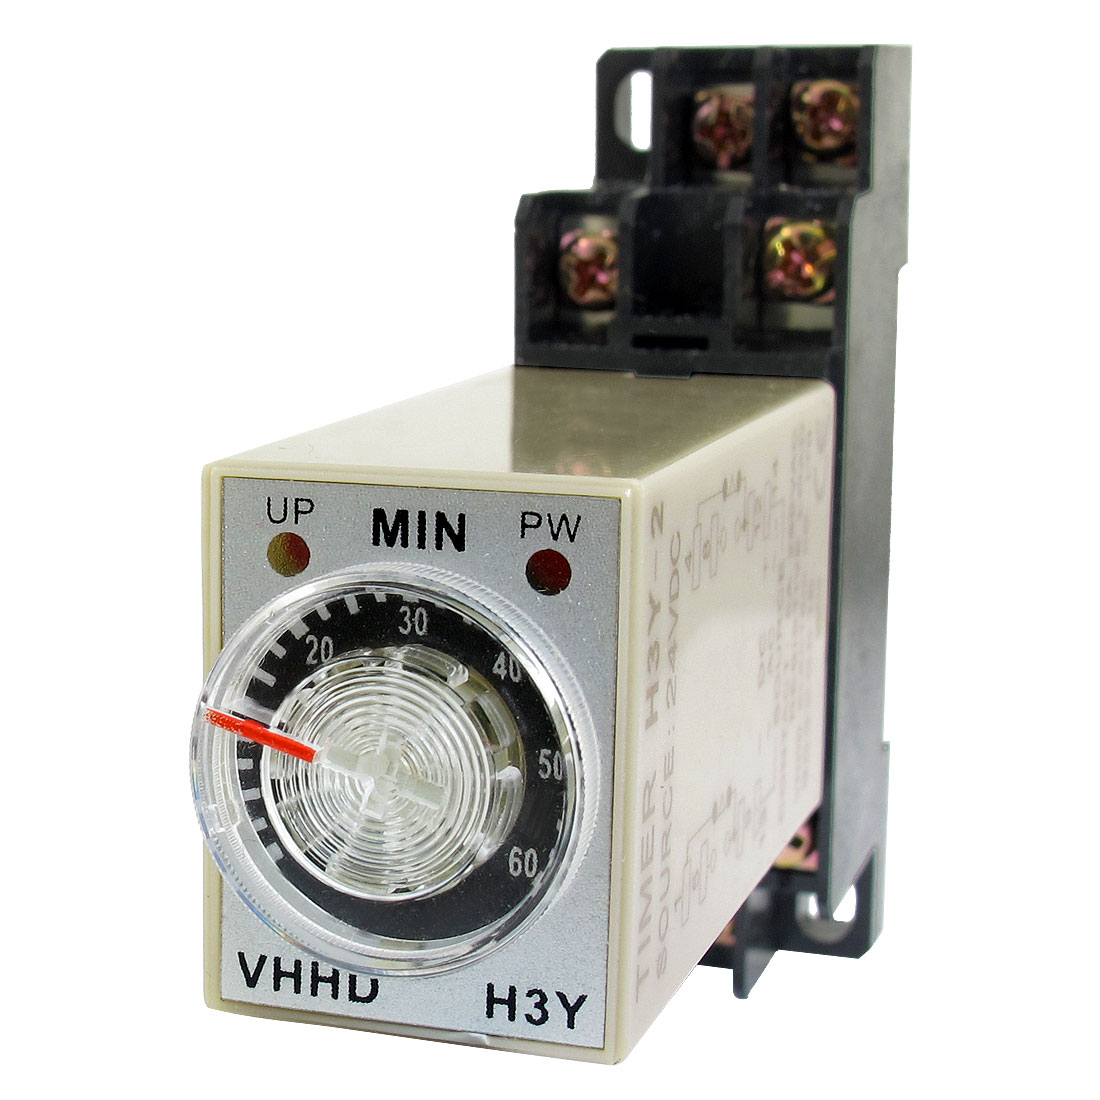 DC 24V 60Min 0-60 Minute Delay Timer Time Relay H3Y-2 + 8 Pin DIN Rail Socket